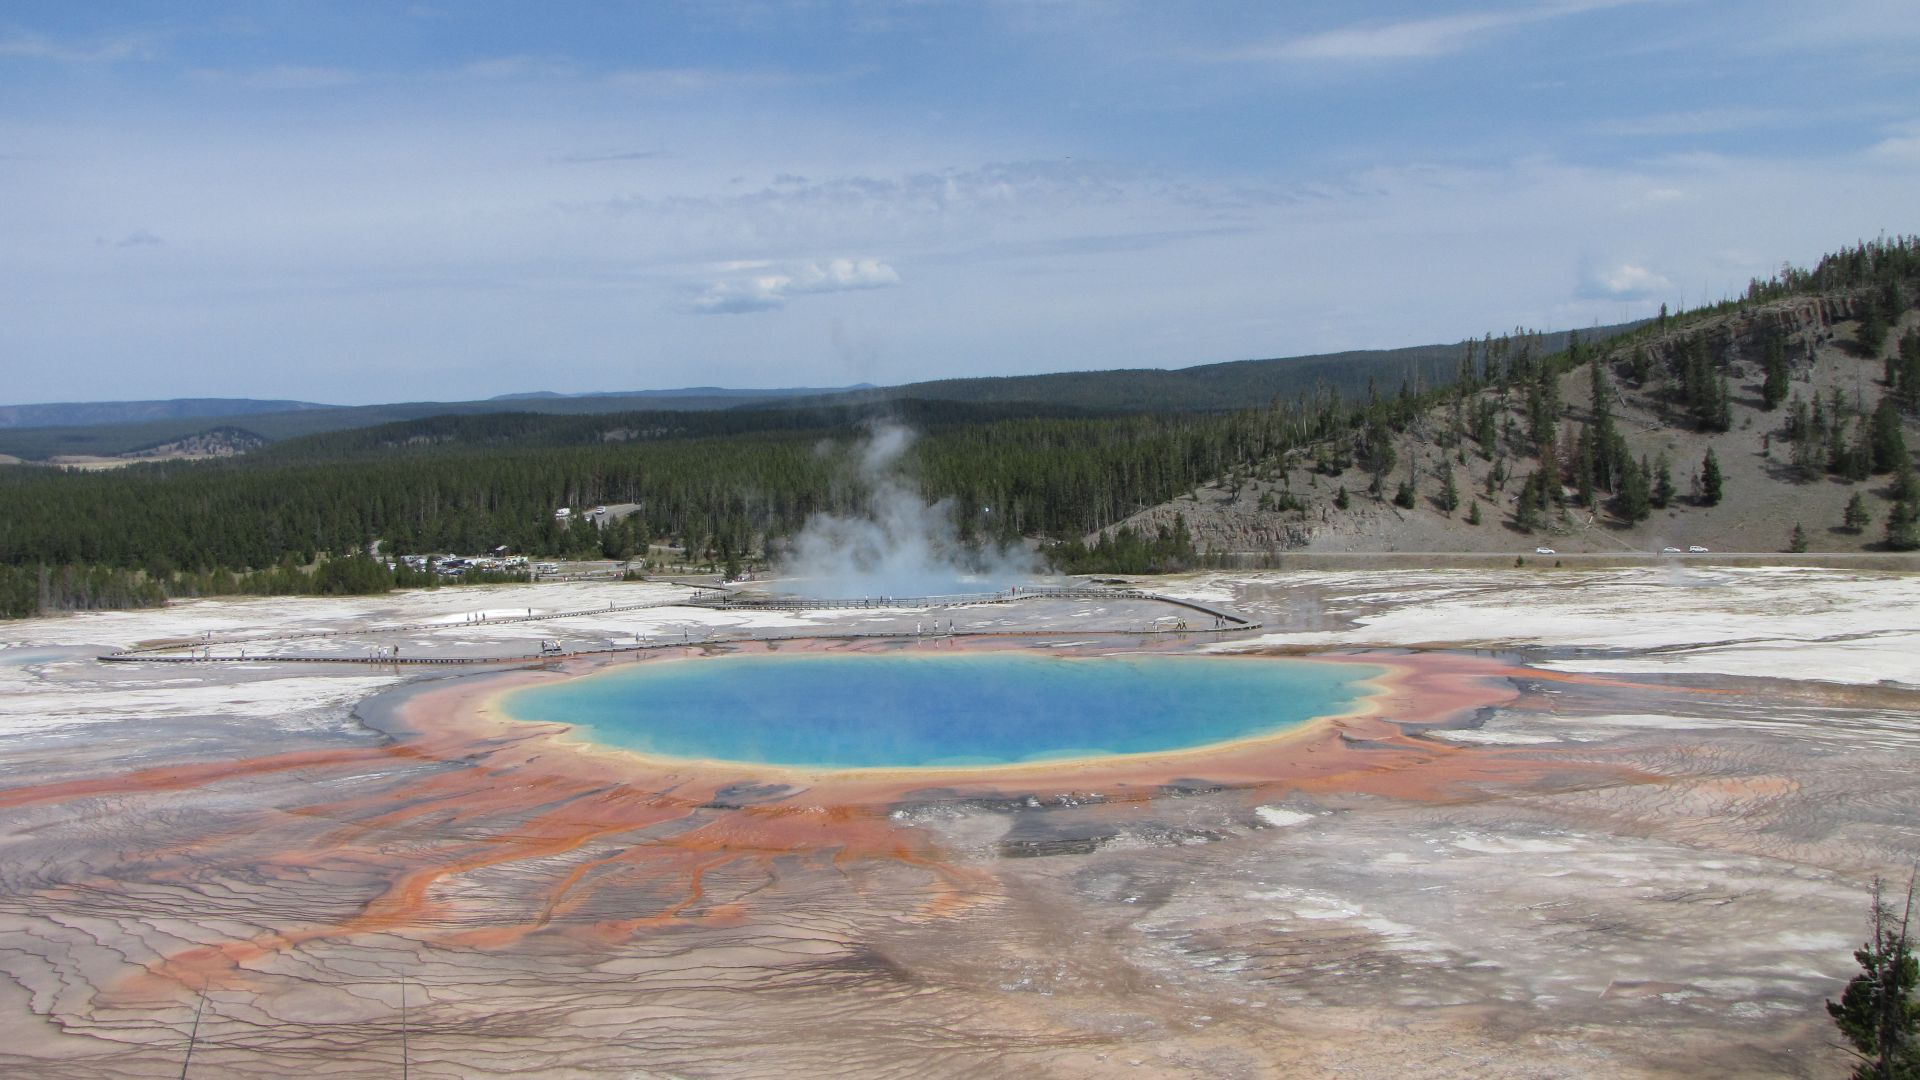 Yellowstone Nat Pk, WY, USA - \'Grand Prismatic\' v pretty, hiked up after some off-roading with the bike to get this view